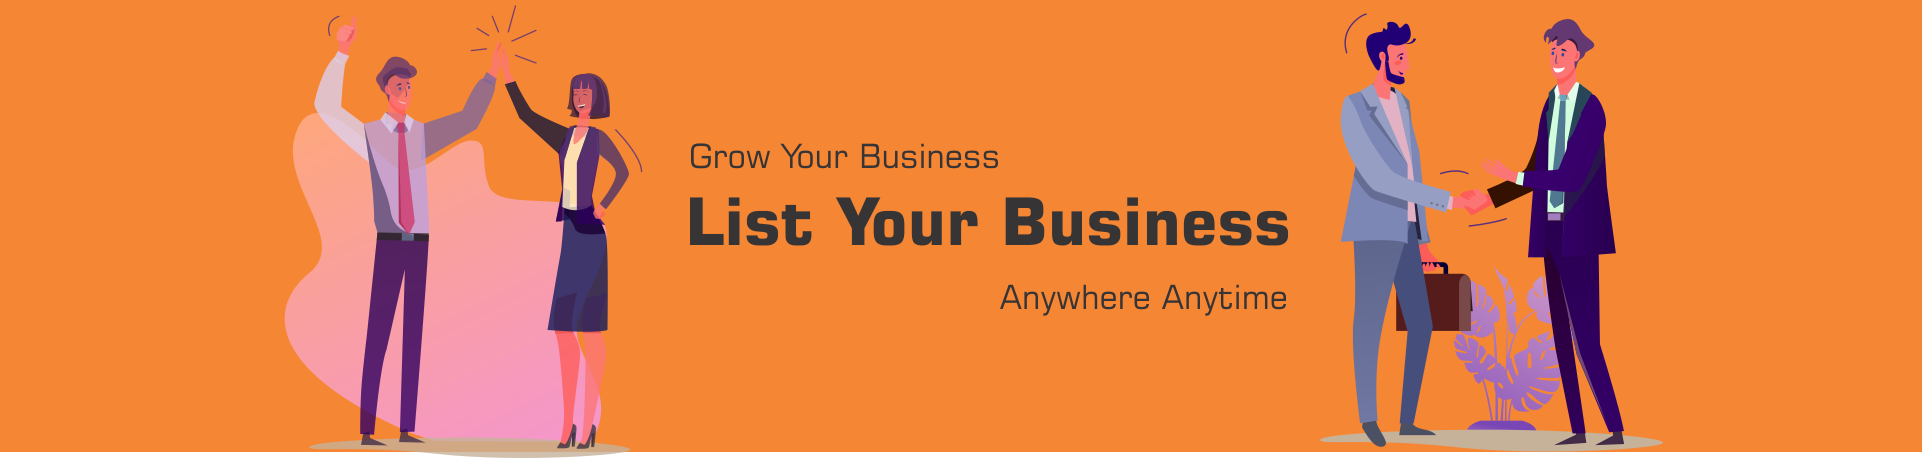 List Your Business_Solution24